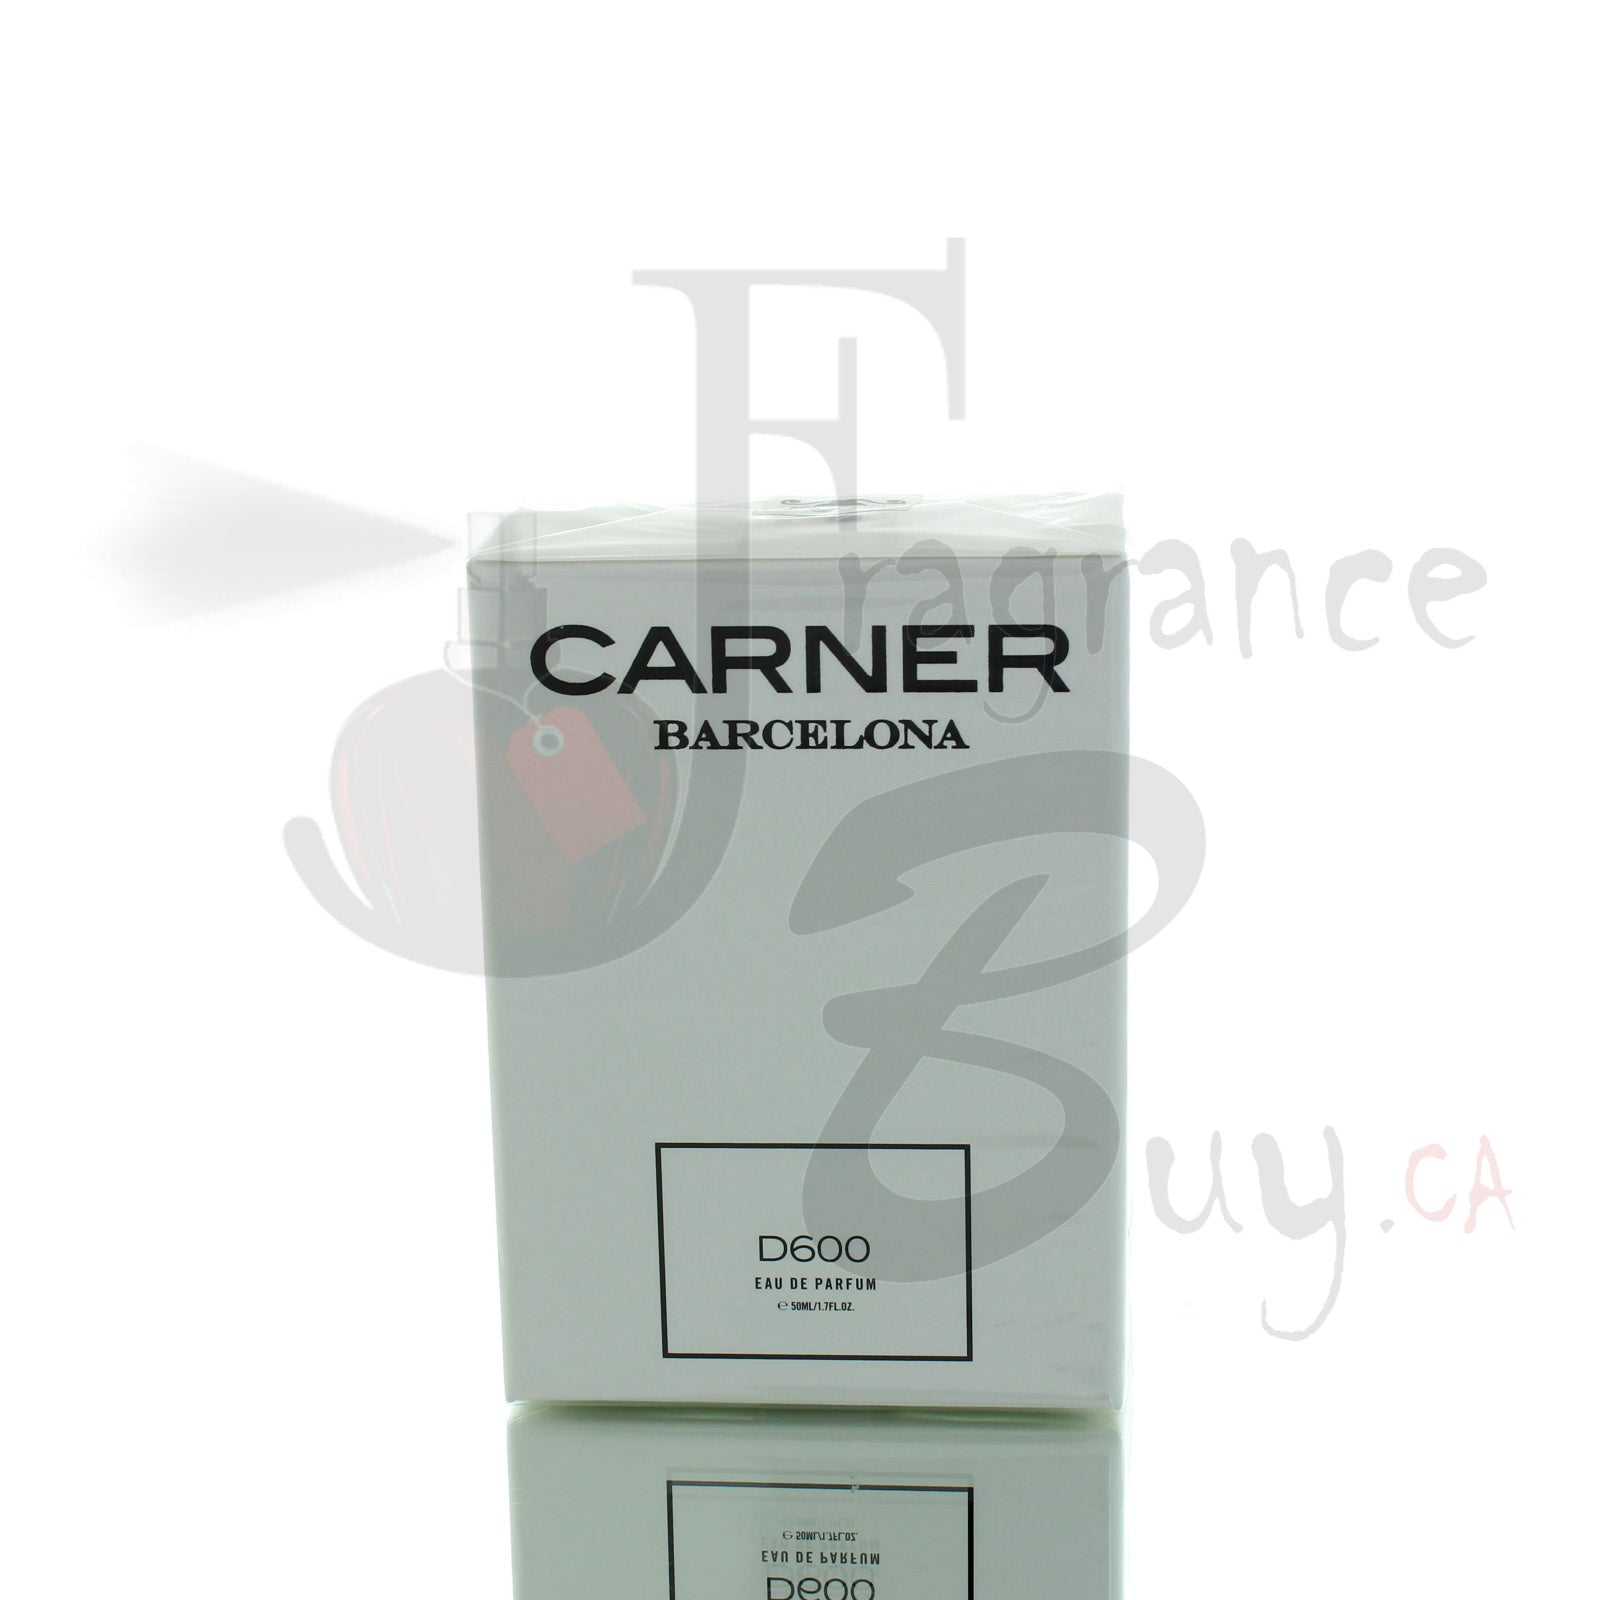 Carner Barcelona D600 For Man/Woman